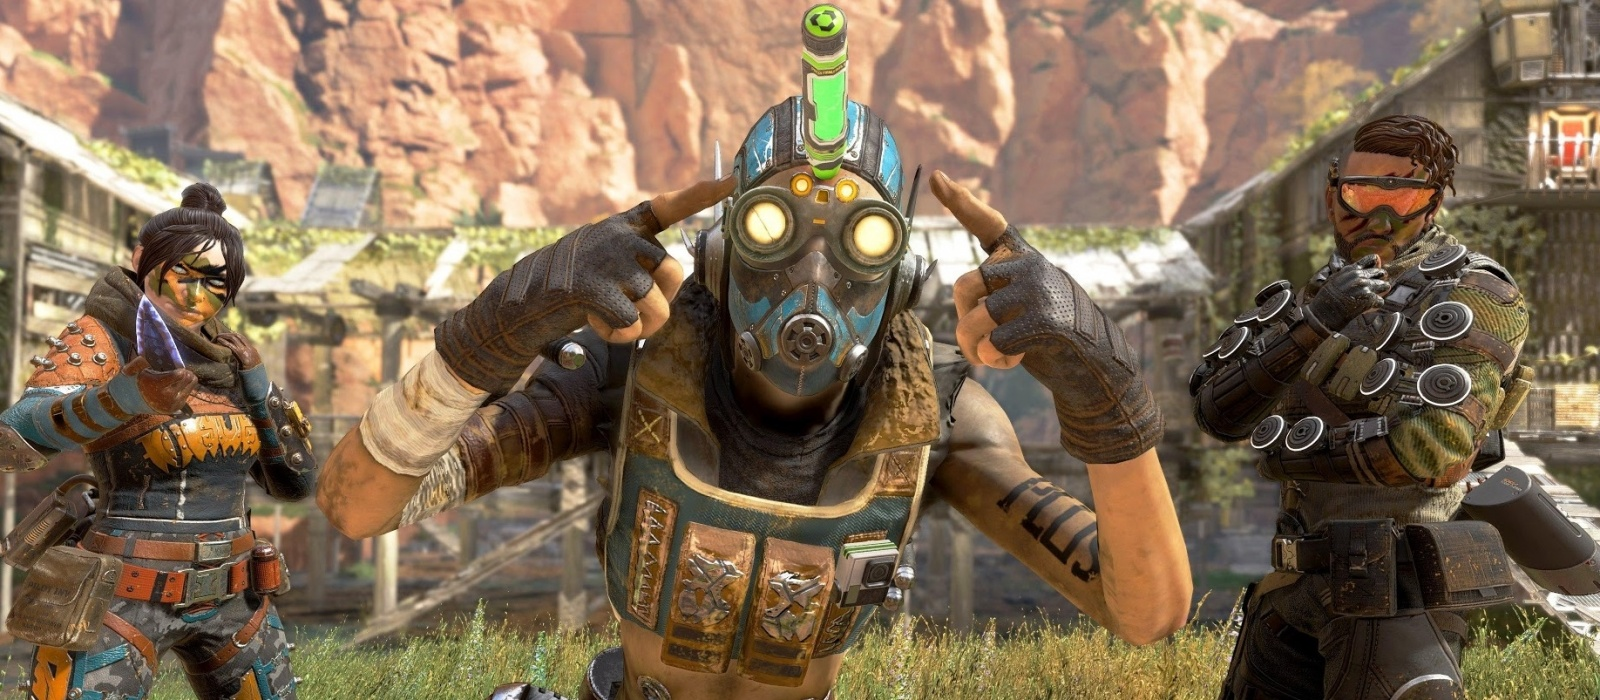 All About Season 9 in Apex Legends - New Valkyrie Character, Arenas, Skins, Bocek Bow and More Legacy Update Changes